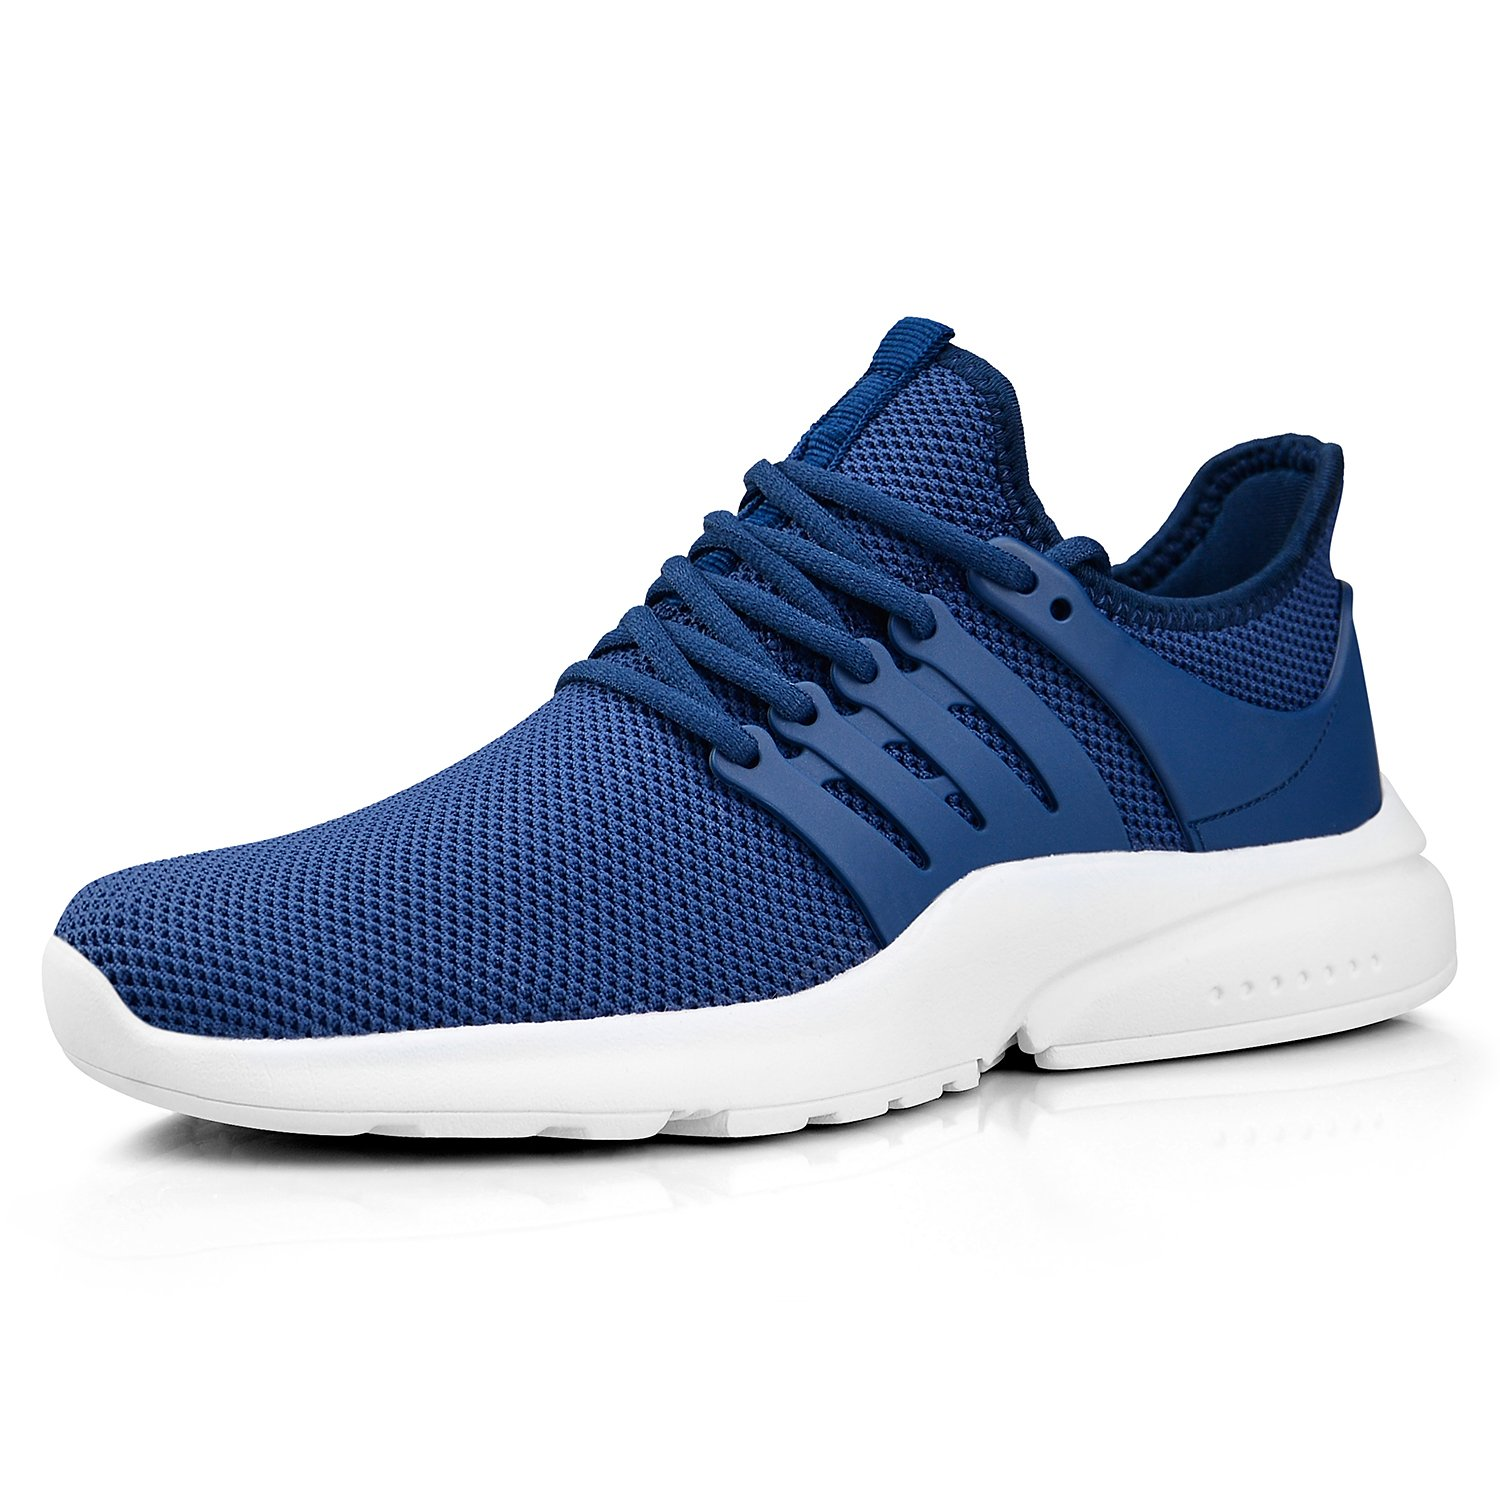 ZOCAVIA Women's Running Shoes Ultra Lightweight Breathable Mesh Sport Sneaker Casual Athletic Shoes B07D4H9CL1 10 B(M) US|Blue/White